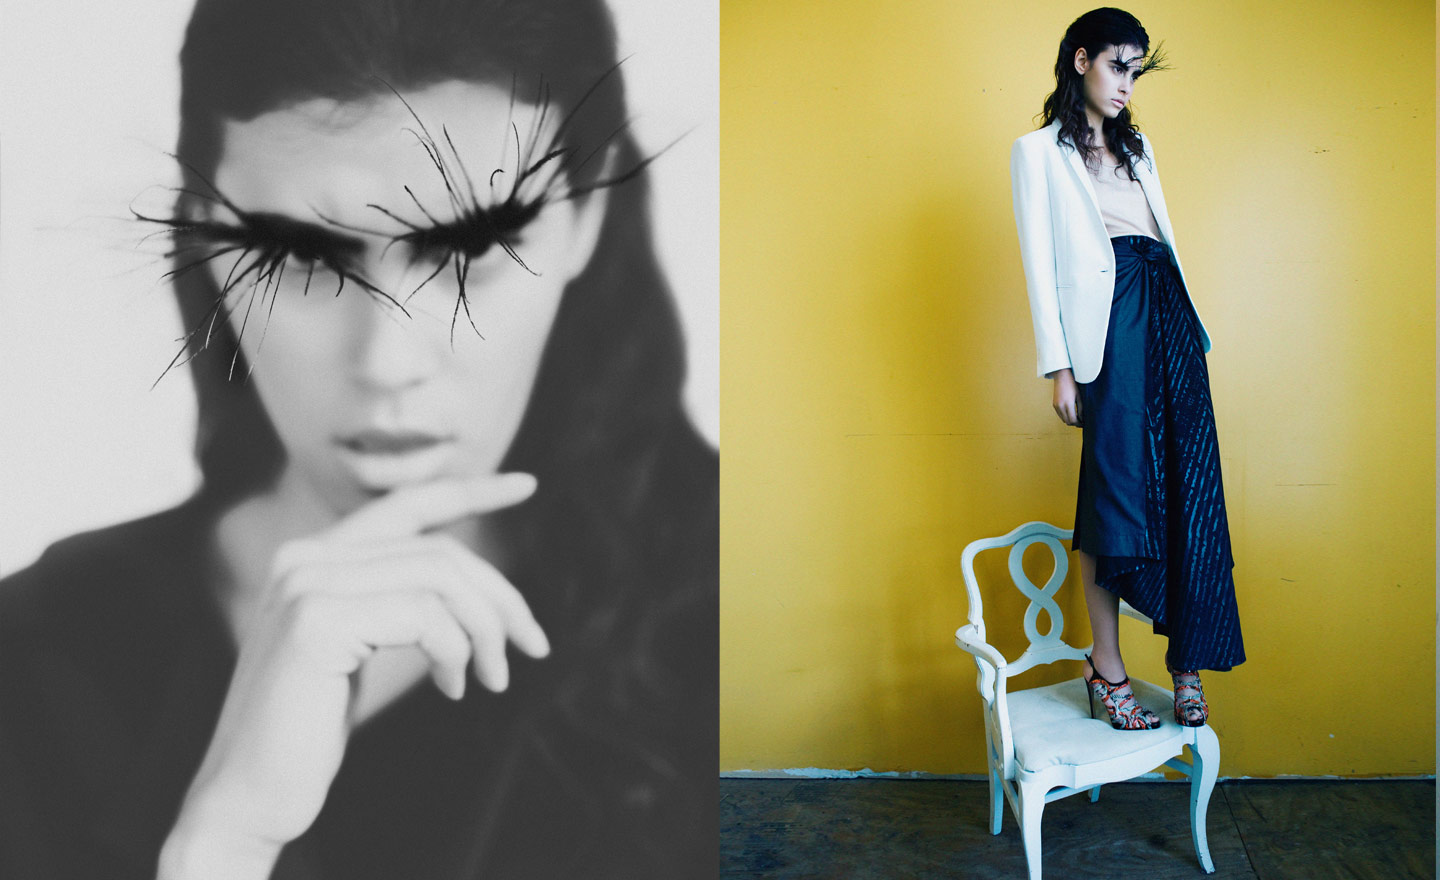 Bat for lashes by Eva Kruiper | itfashion.com